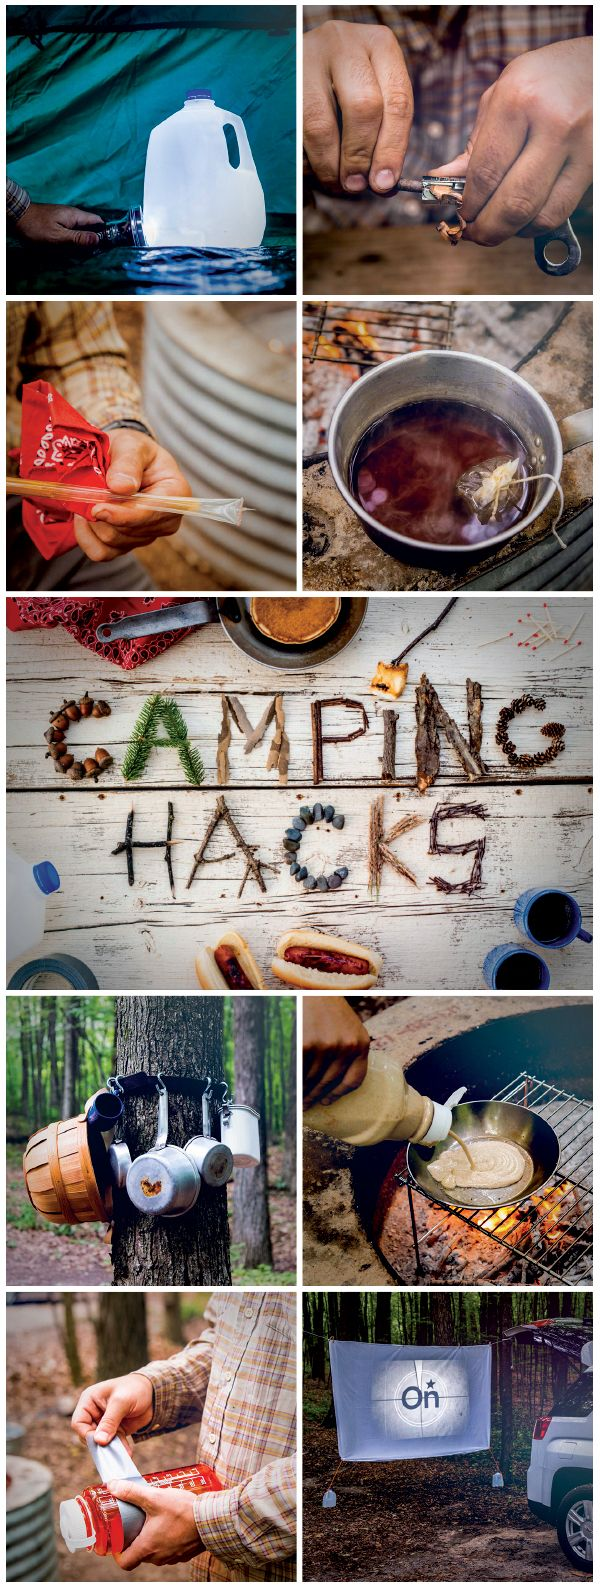 #Camping #tips and tricks that will change the way you #camp forever! See them here: